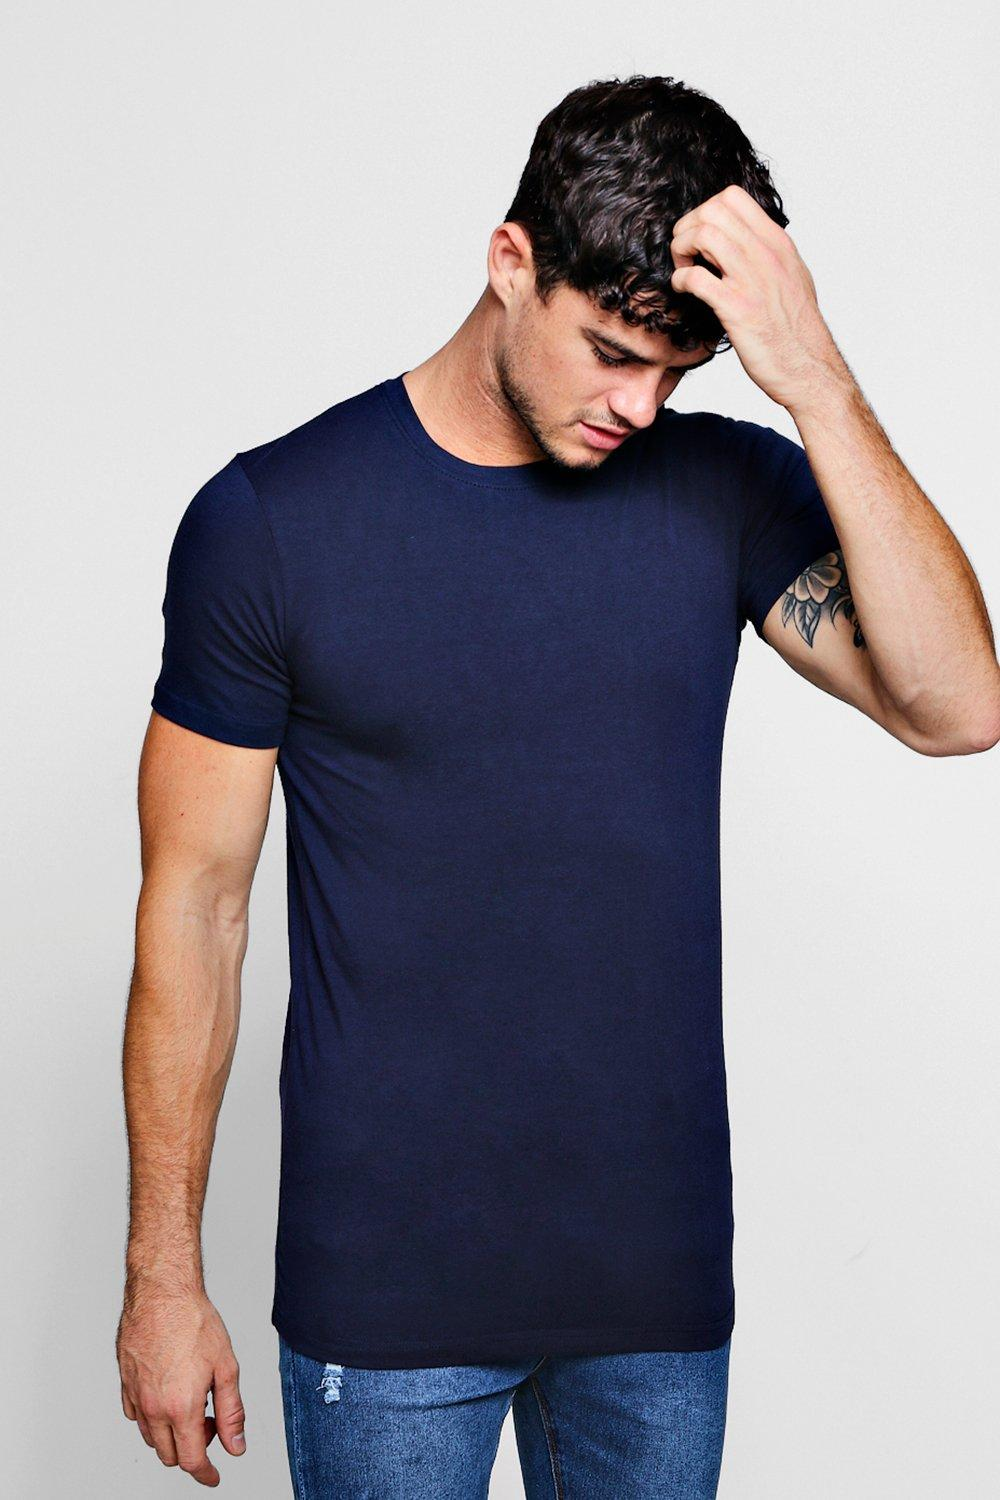 boohooMAN navy Muscle Fit Crew Neck T Shirt